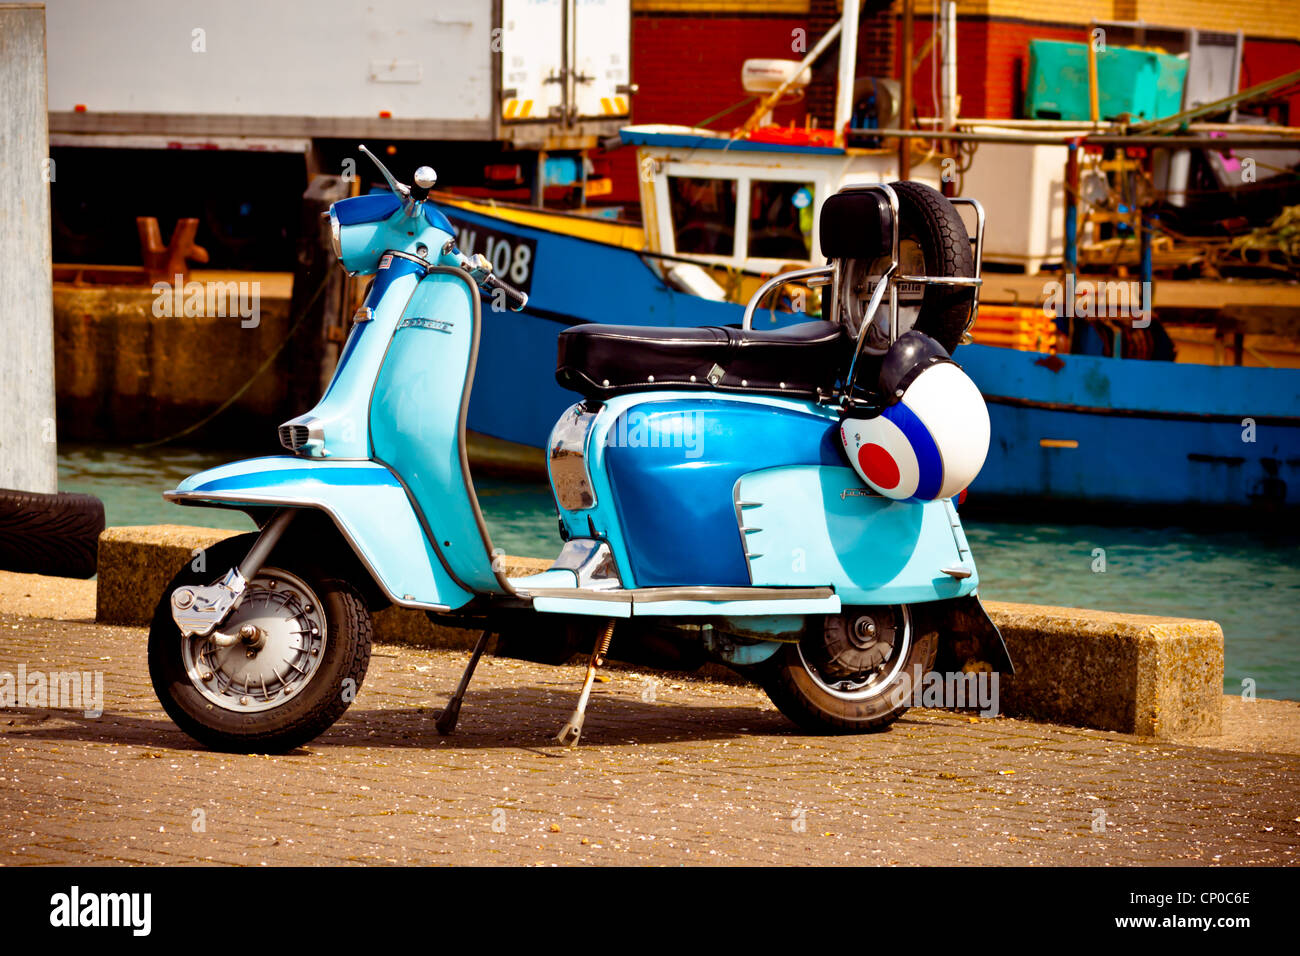 Lambretta scooter at Camber Docks Portsmouth Stock Photo